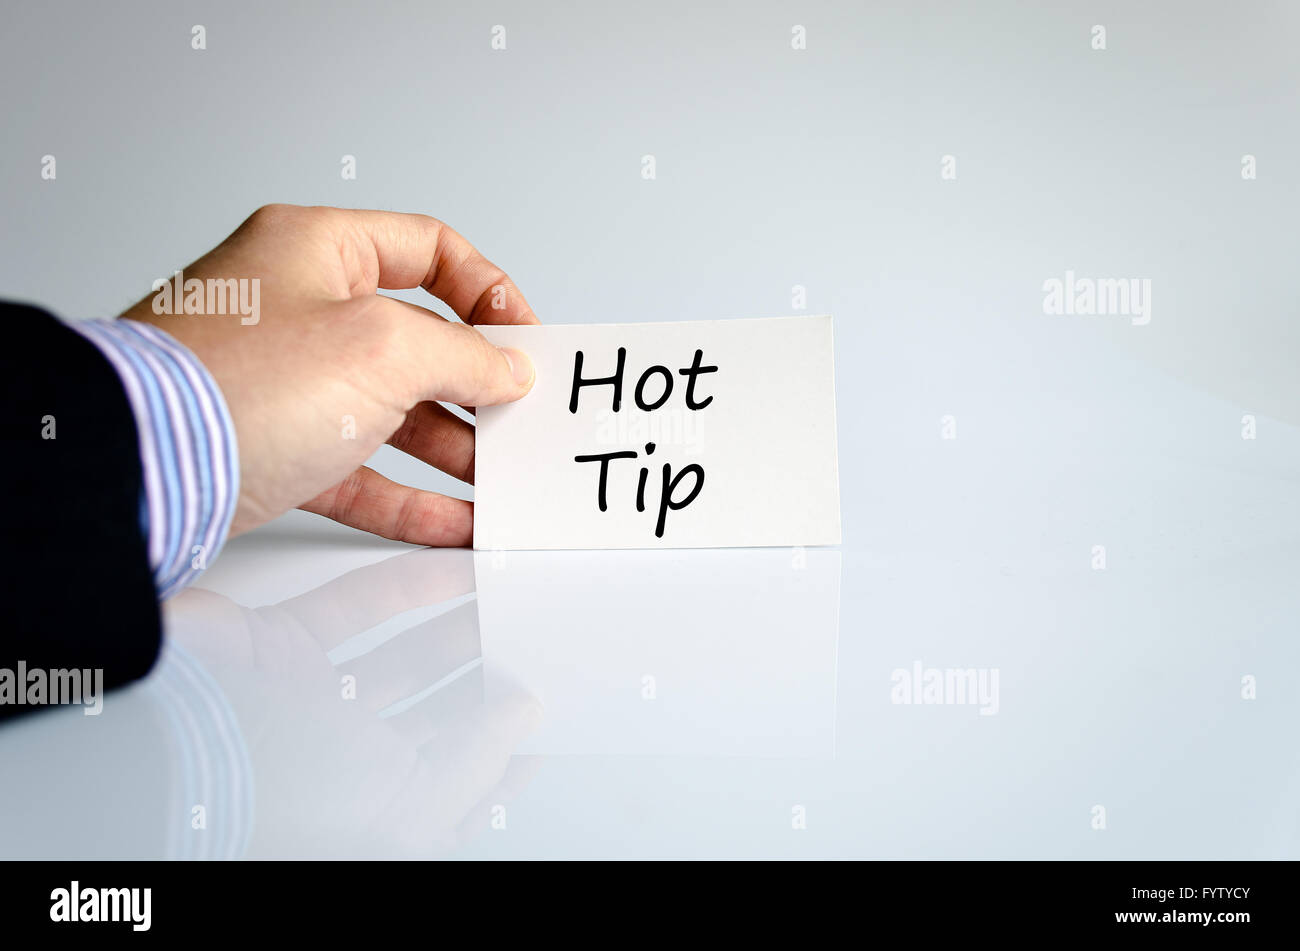 Hot tip text concept - Stock Image